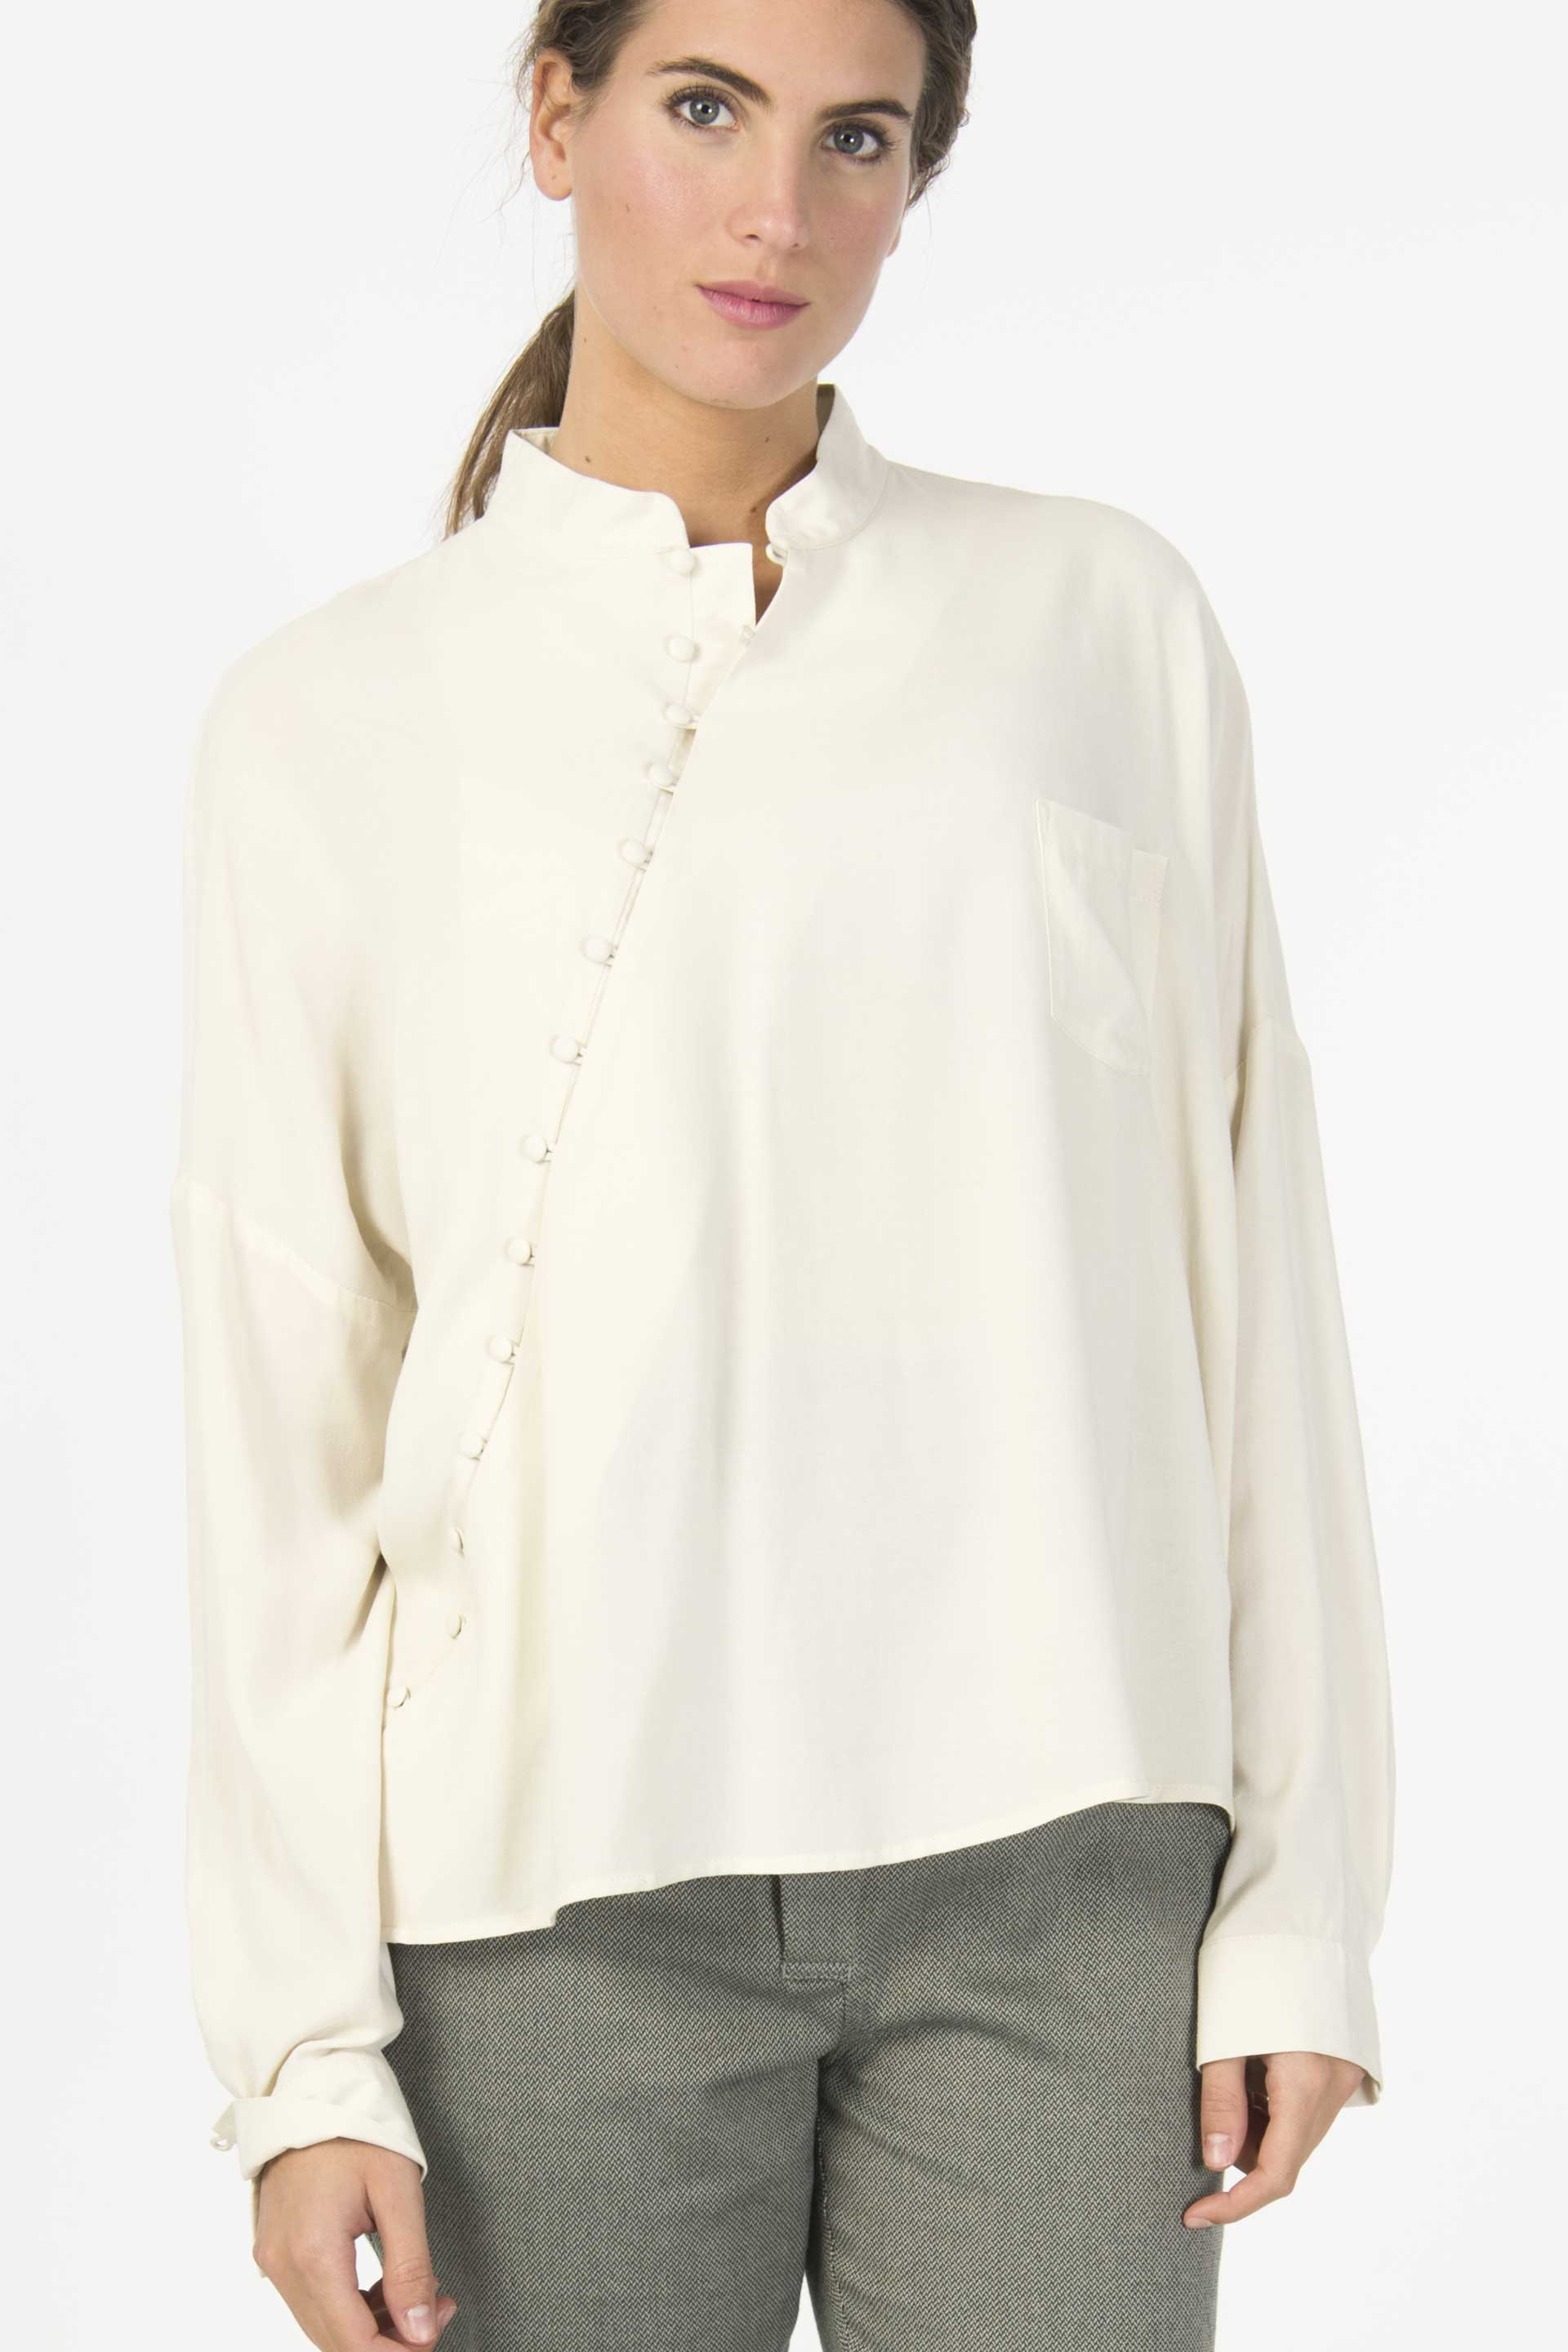 RIBBES Shirt